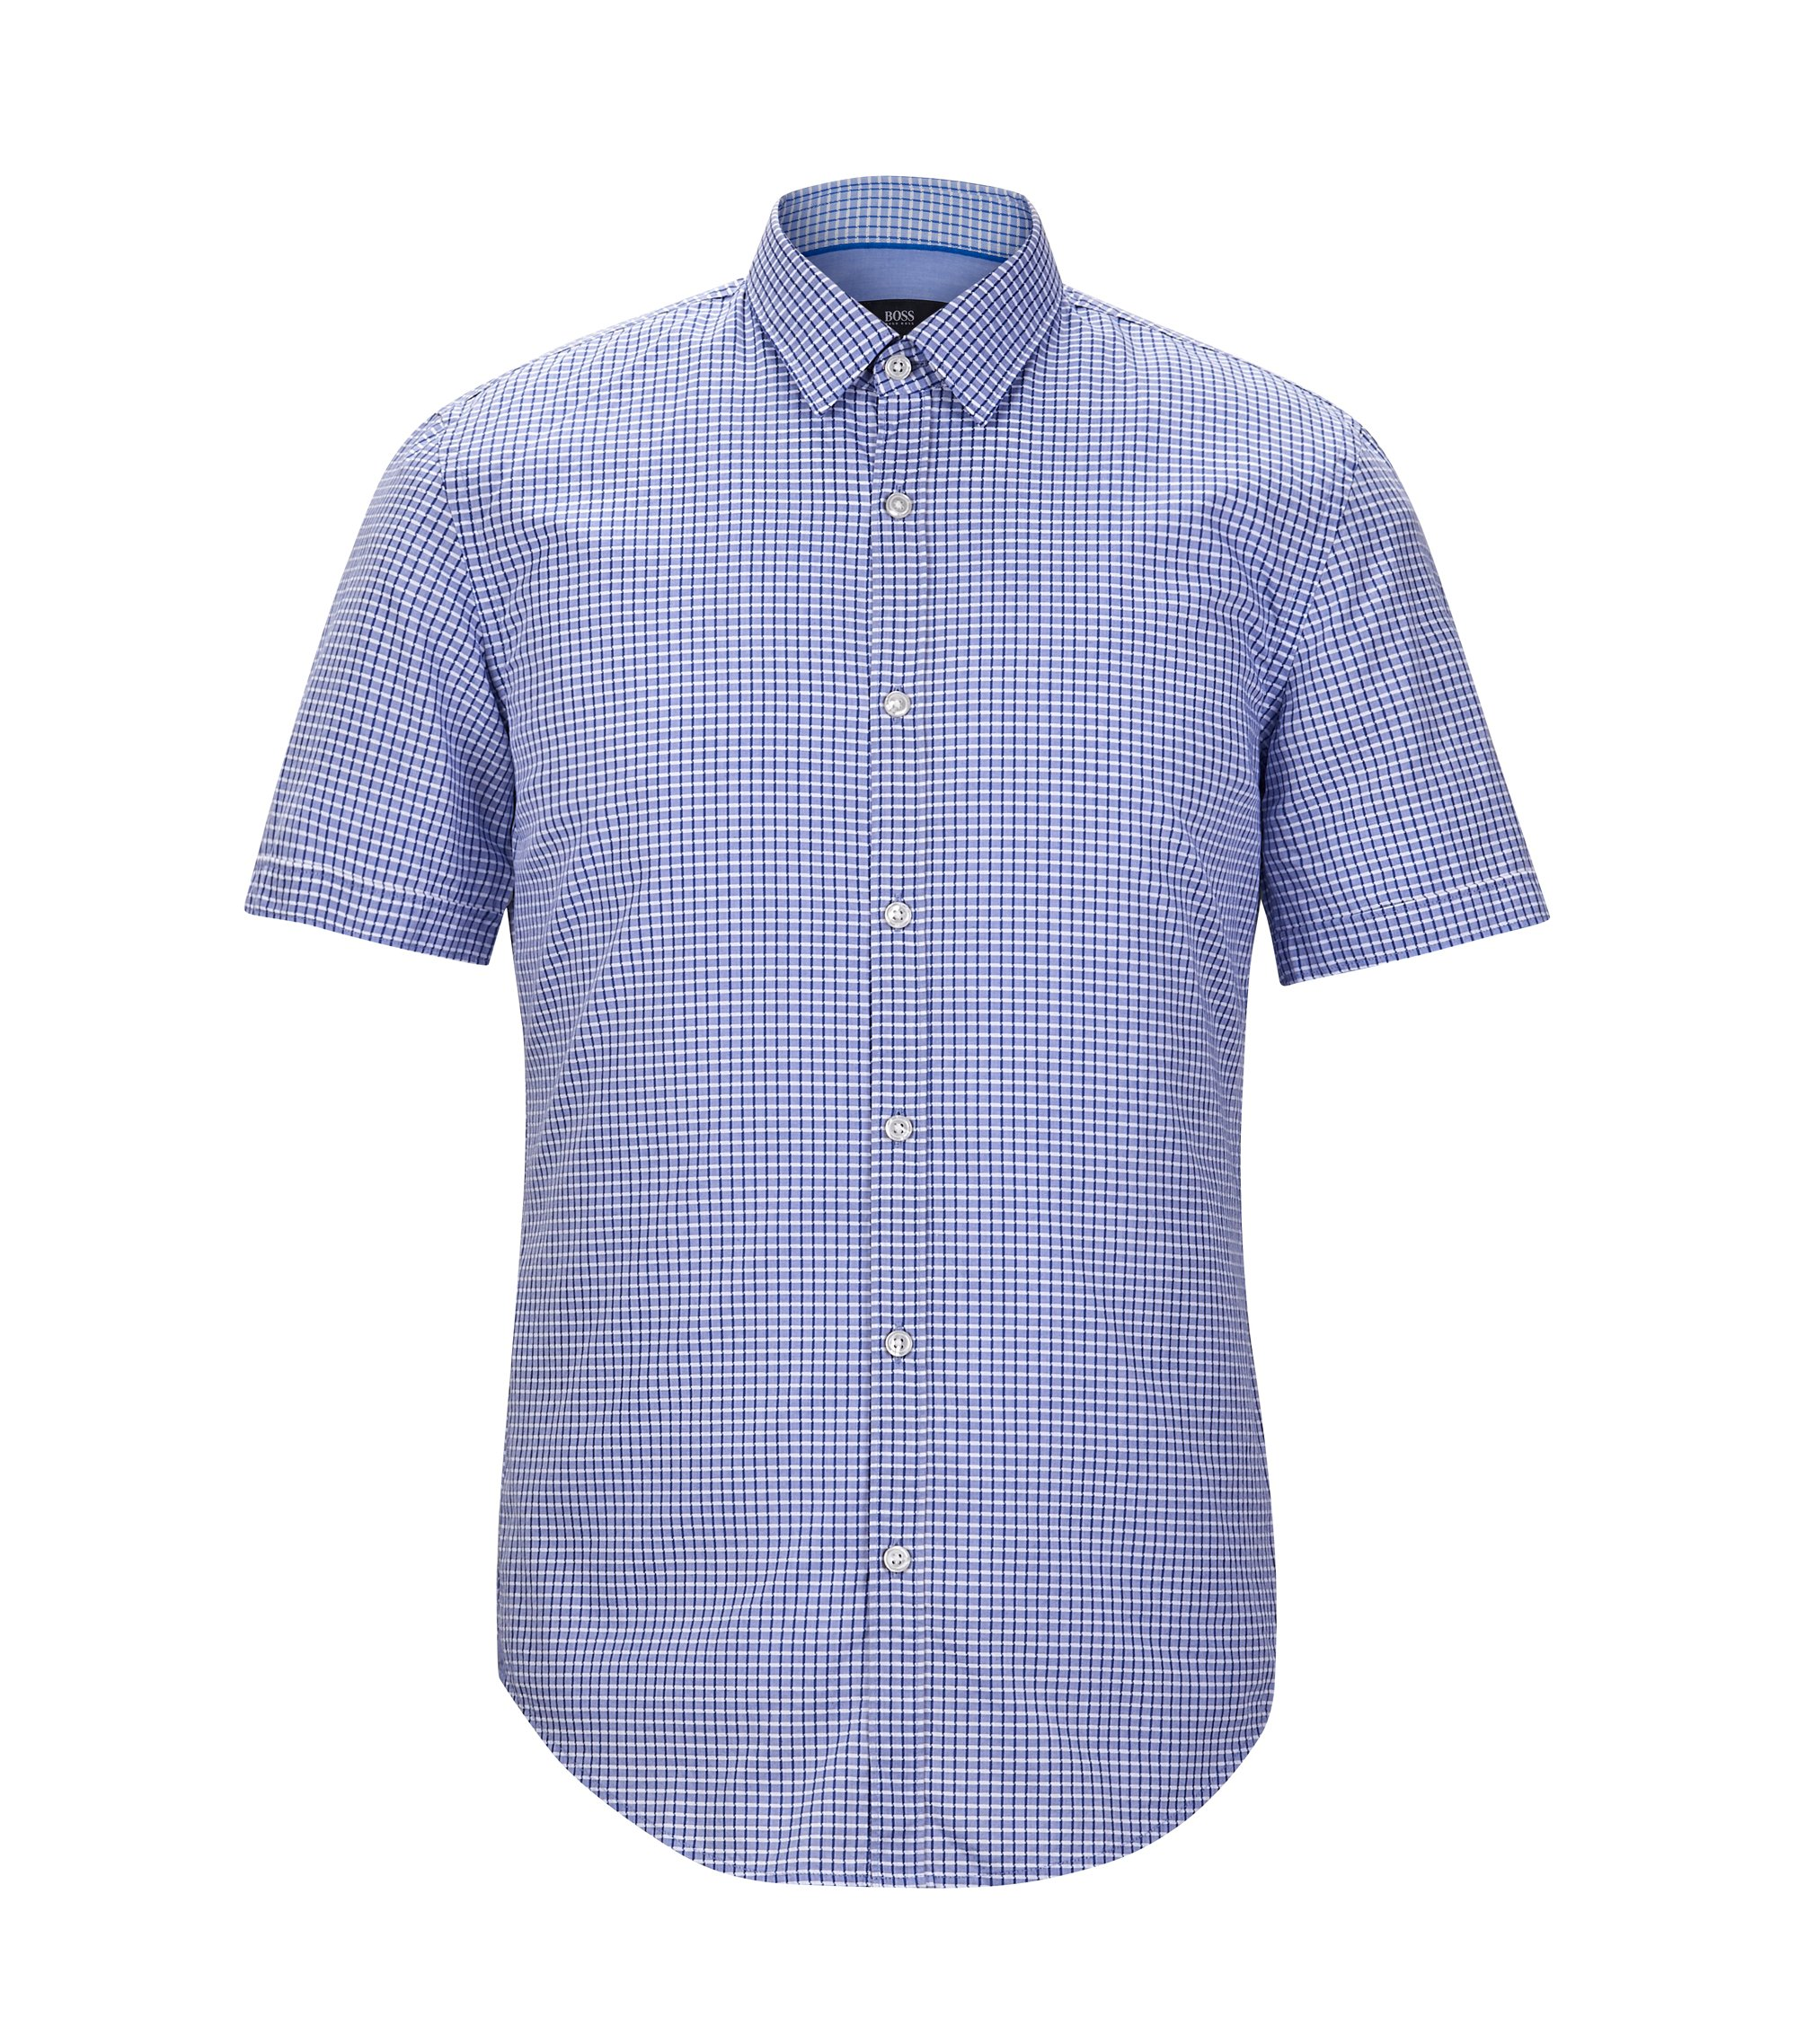 Cotton Blend Button-Down Shirt, Slim Fit | Ronn, Blue